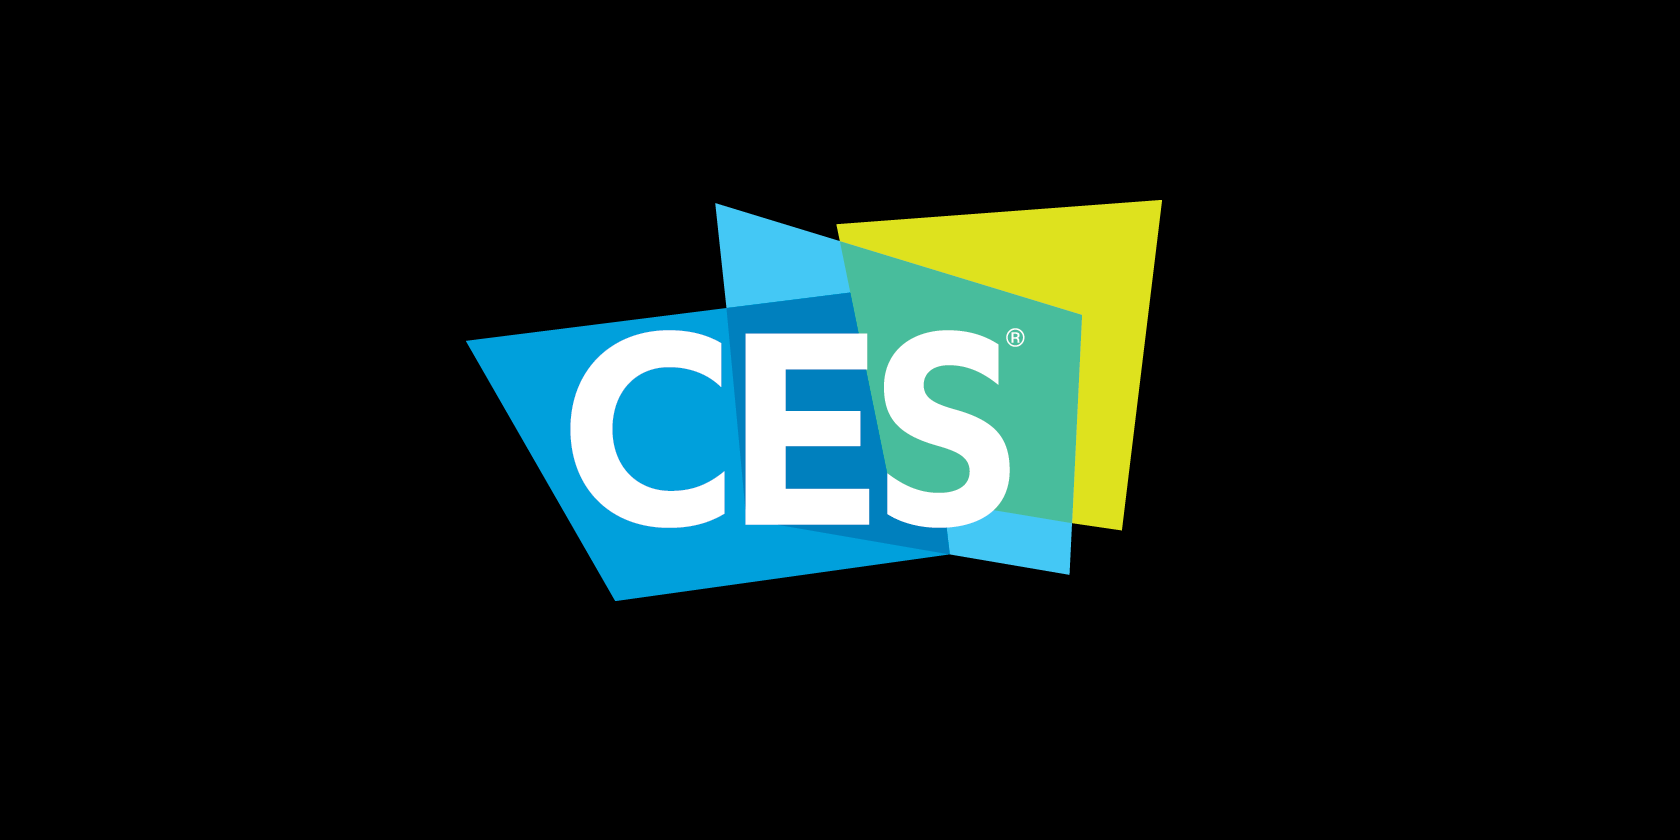 HERE IS A LOOK AT THE MOST EXCITING AUDIO PRODUCTS RELEASED FOR CES SO FAR